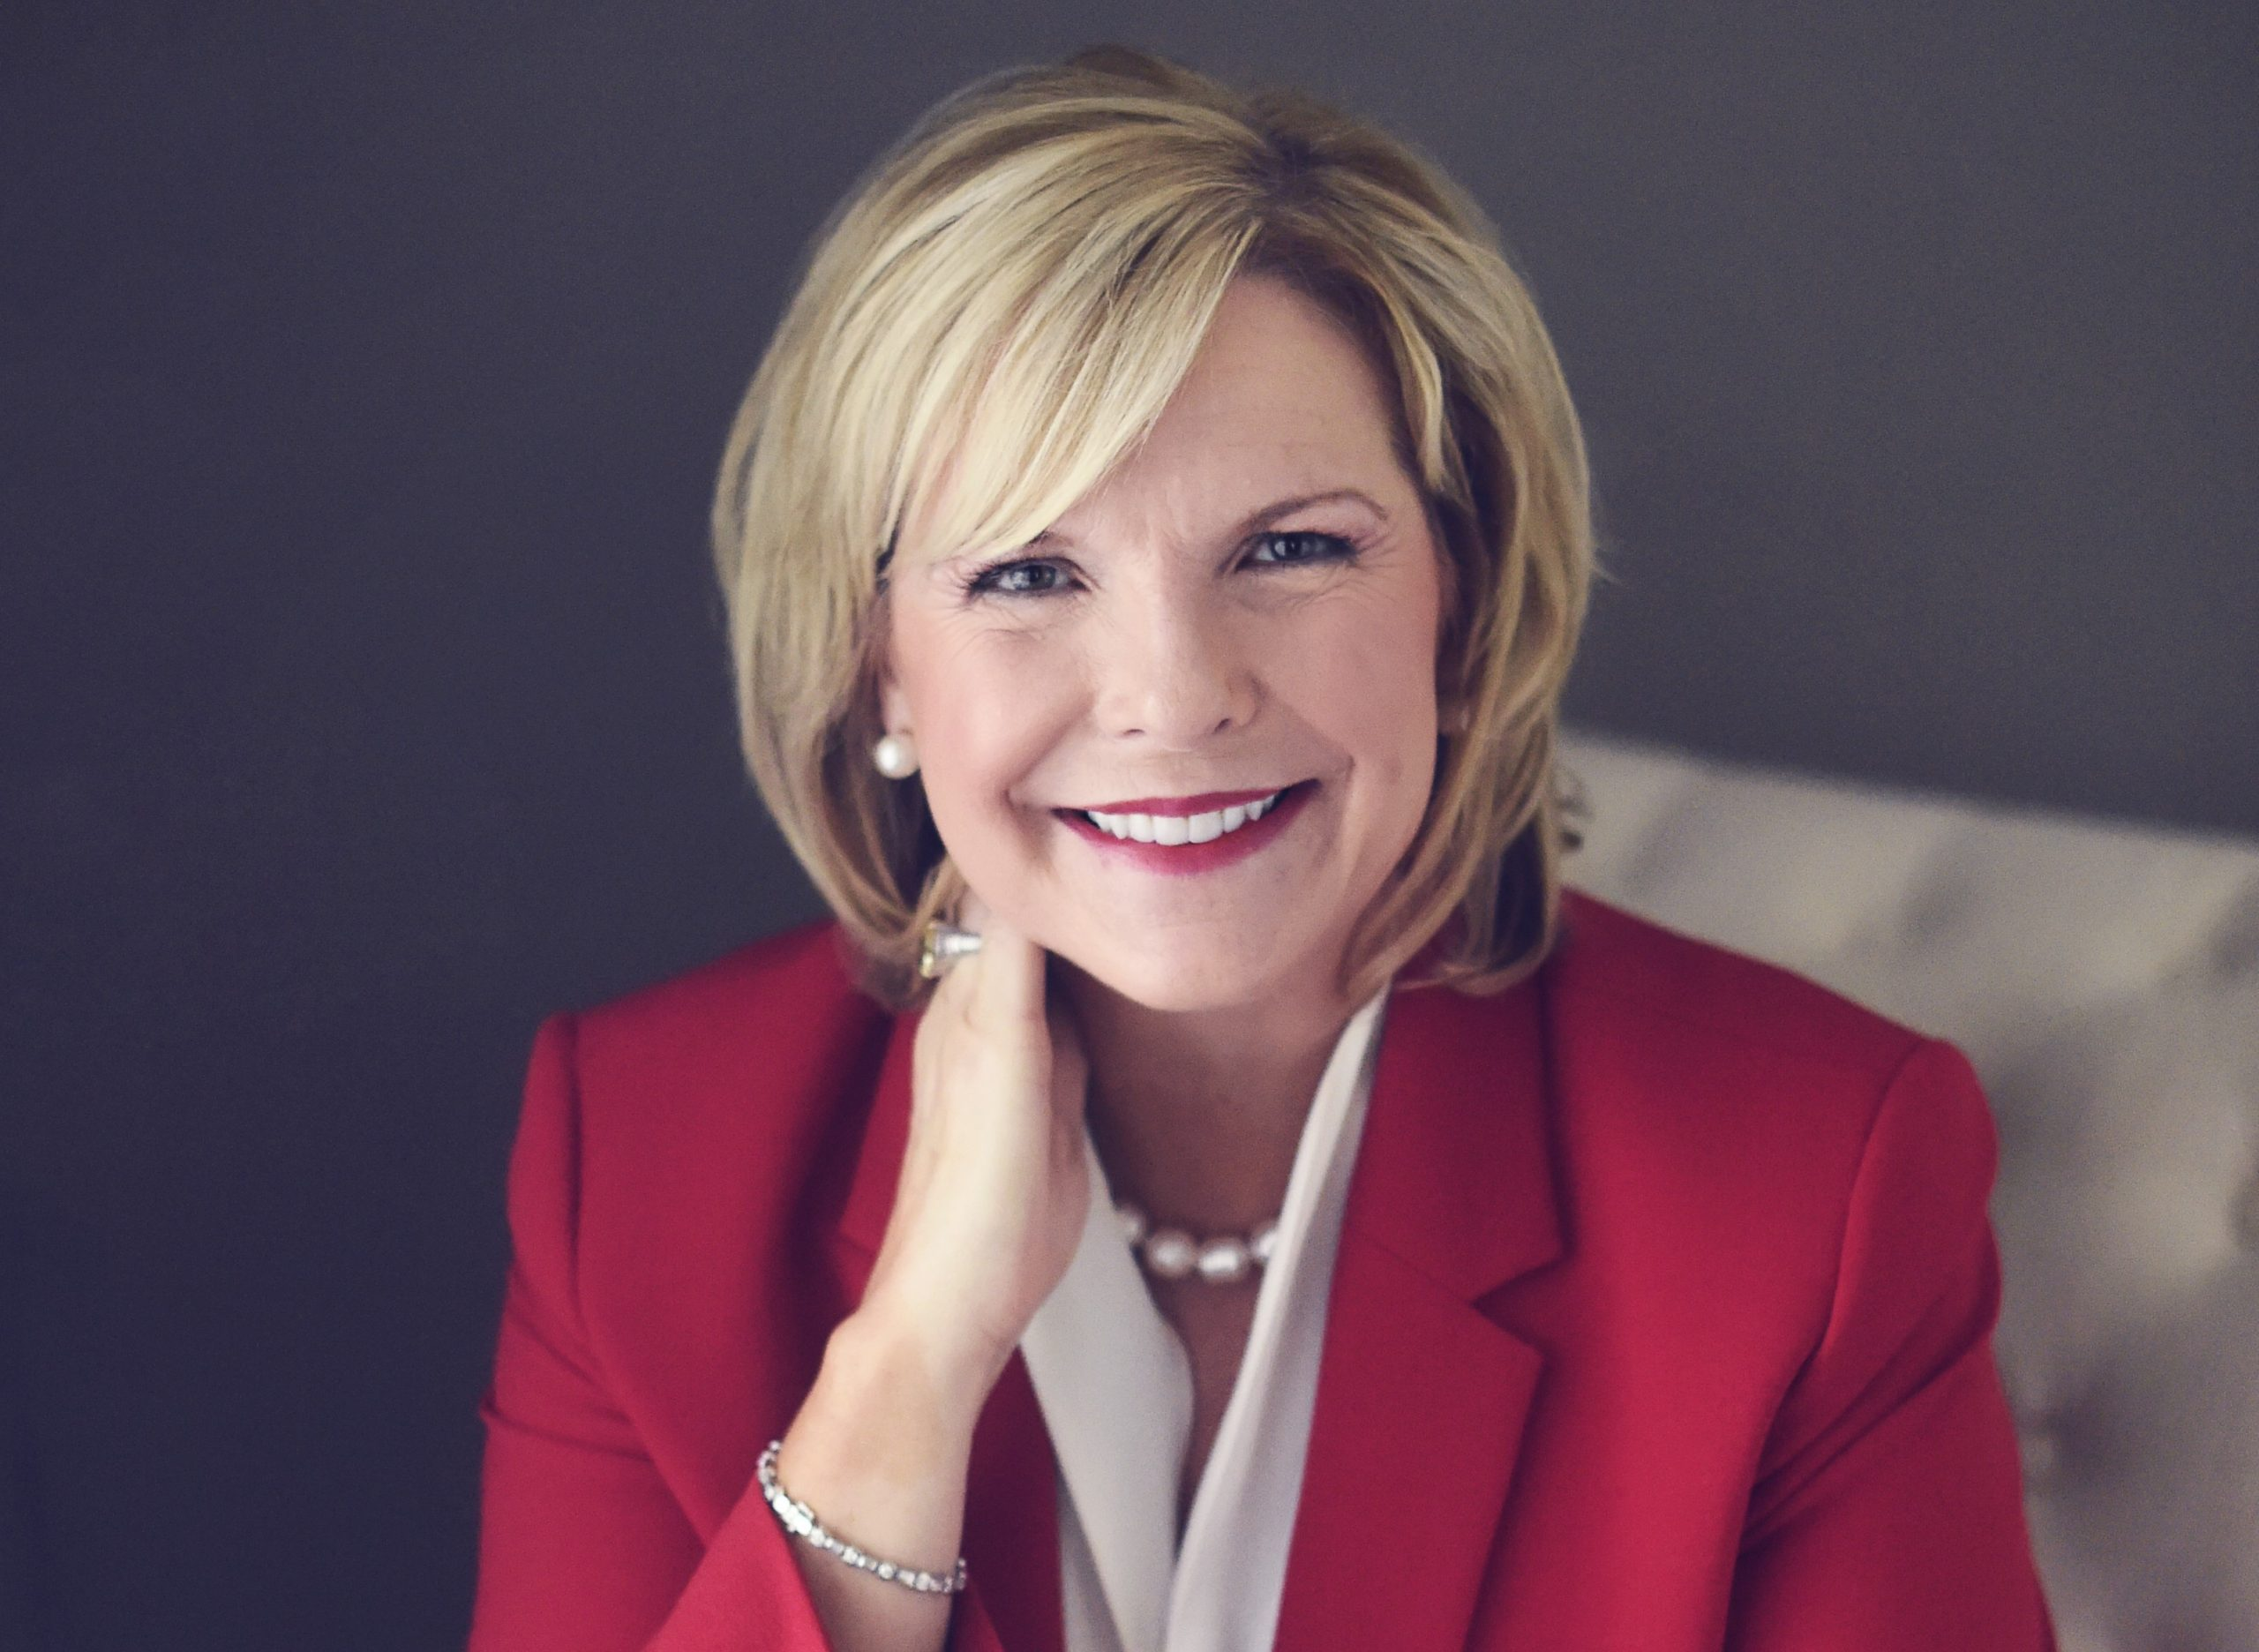 Centric Bank CEO One of the 25 Most Powerful Women in Banking for Sixth Consecutive Year